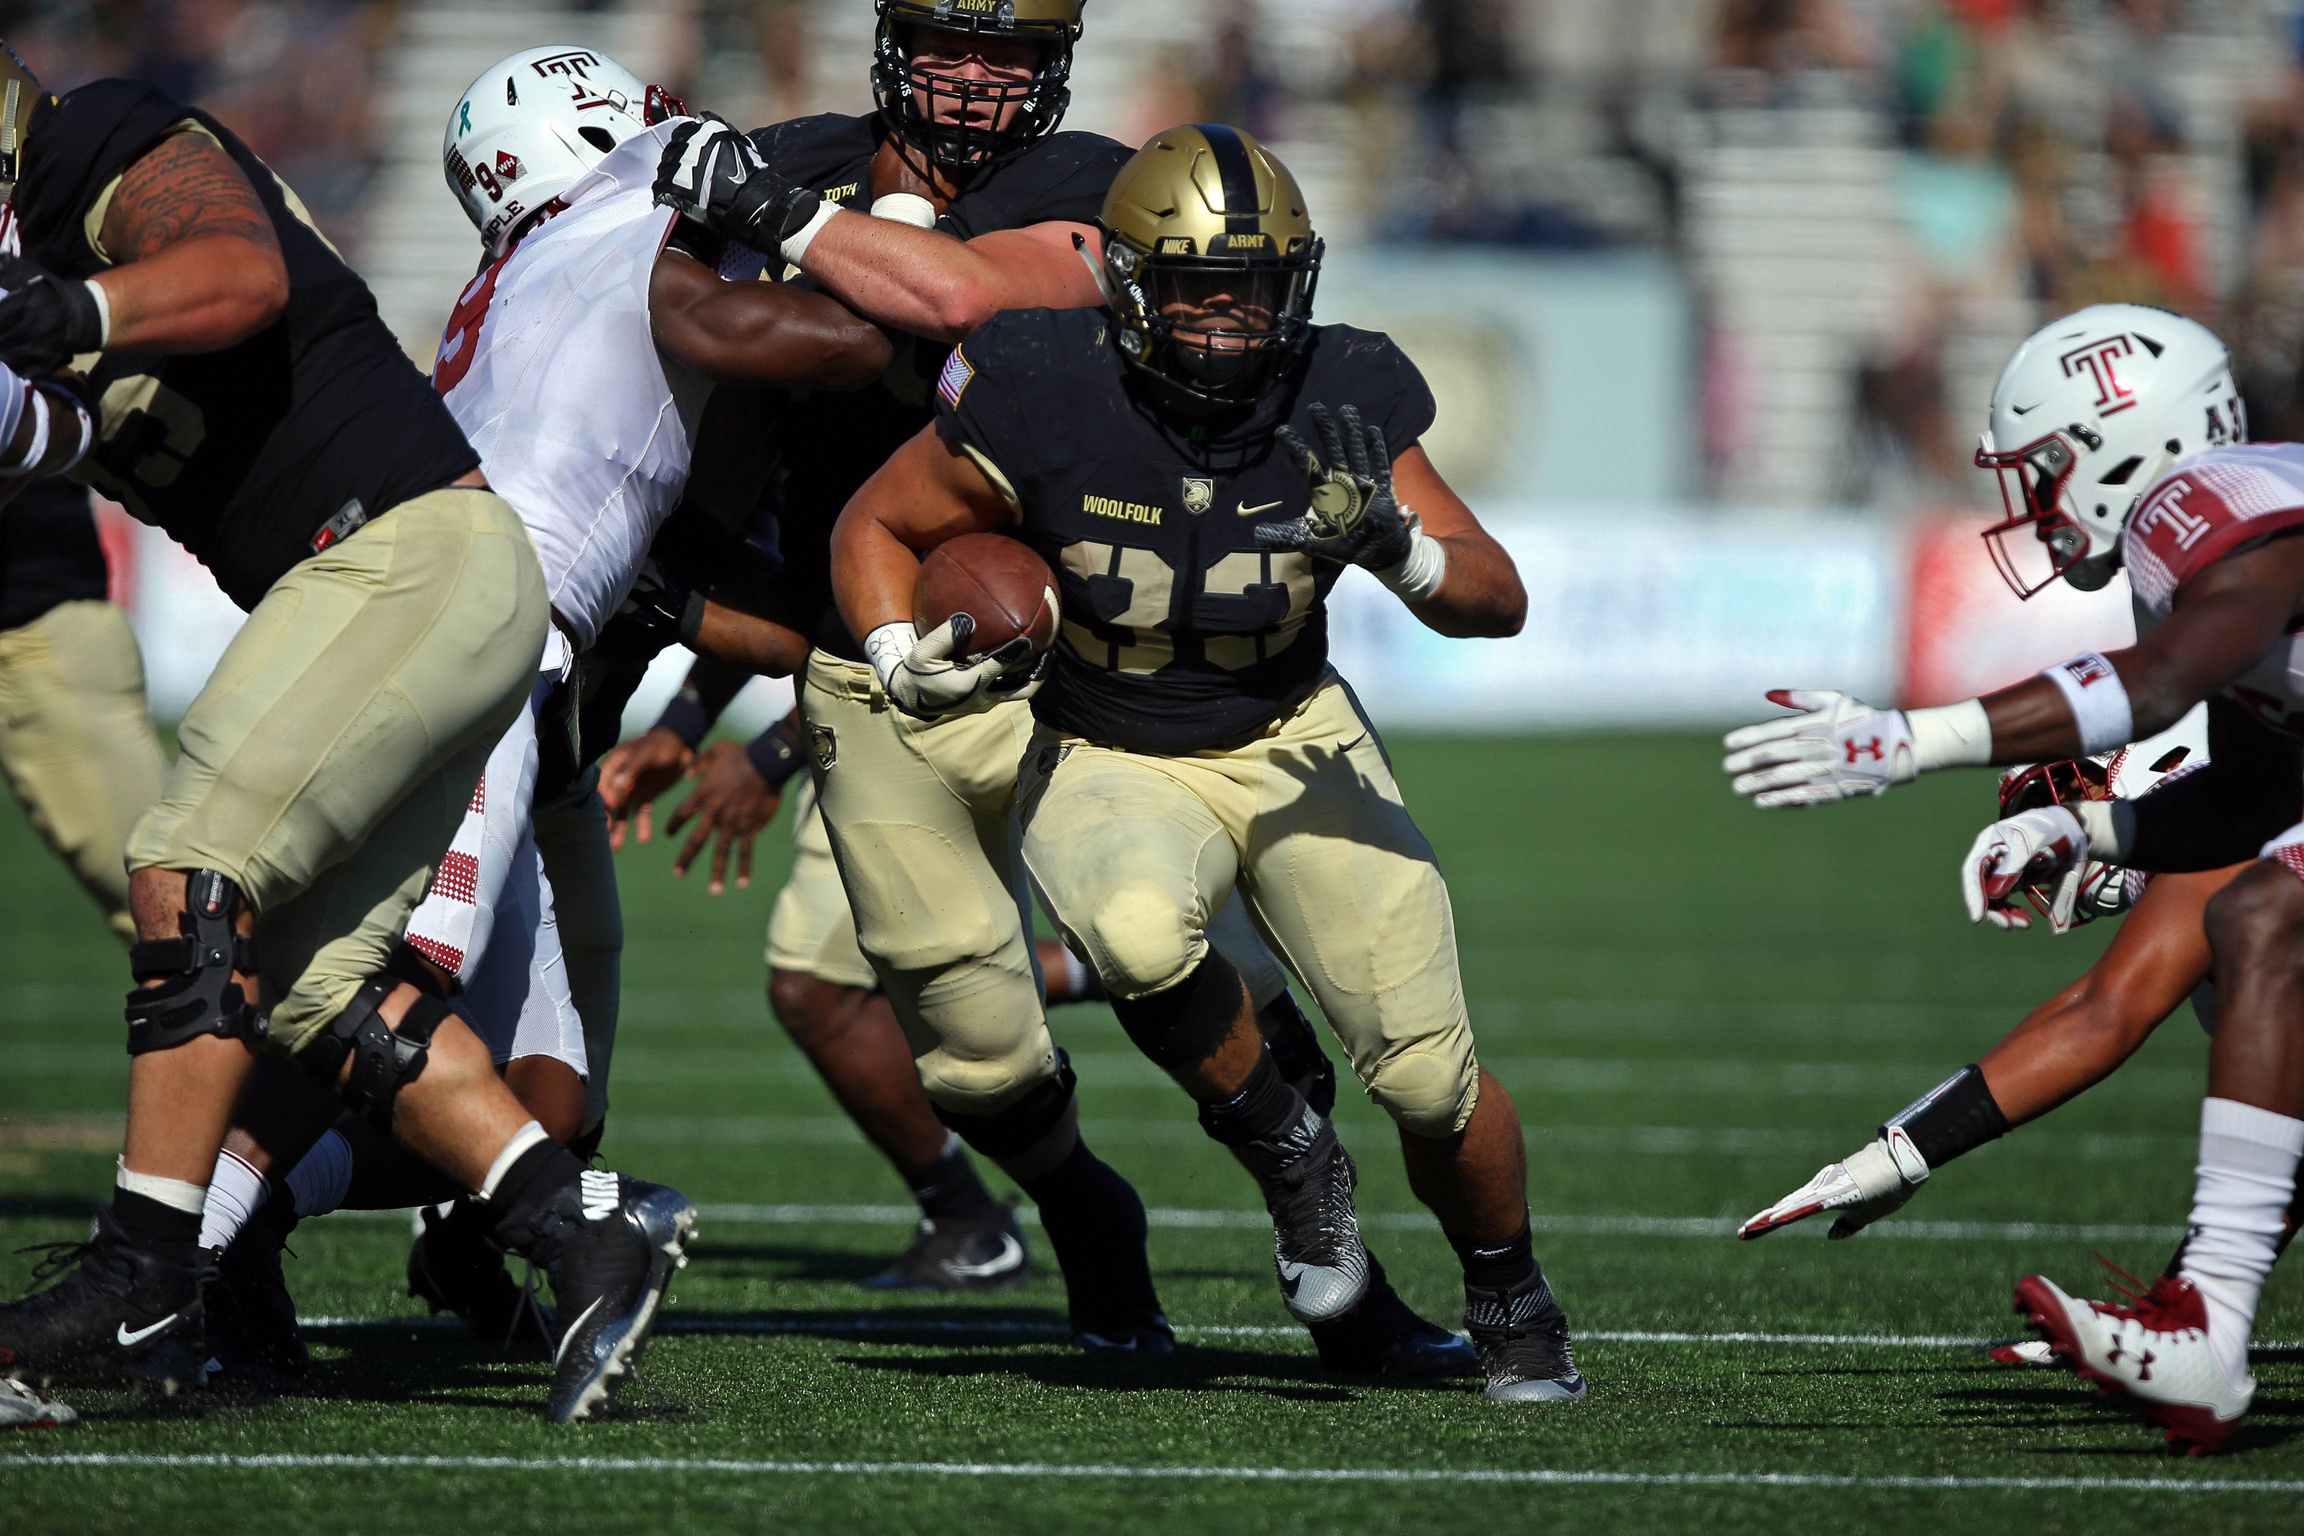 Army Black Knights running back Darnell Woolfolk (33) runs the ball against the Temple Owls during the first half at Michie Stadium. (Danny Wild/USA TODAY Sports)